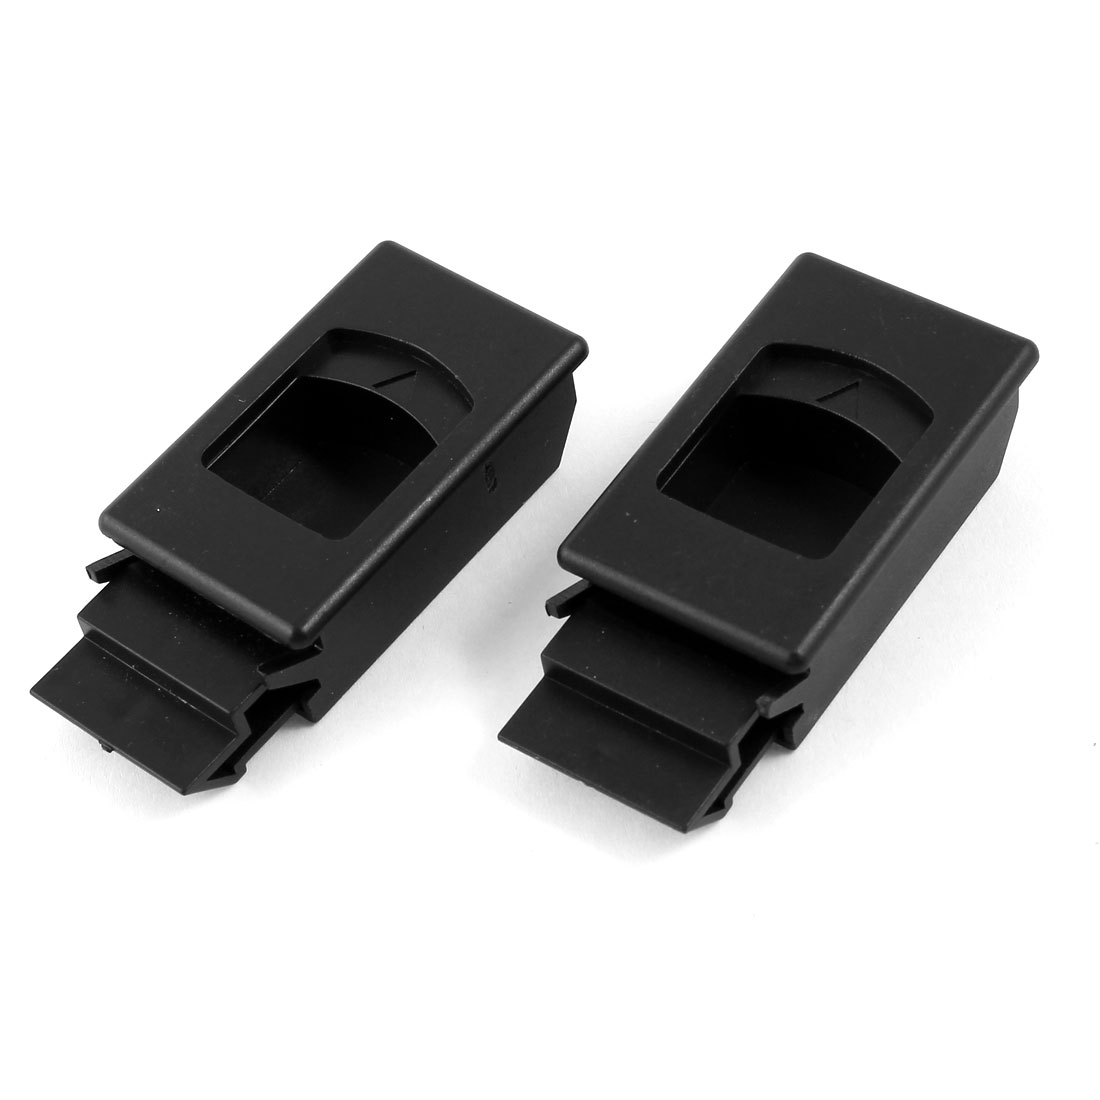 2 Pcs Plastic Inside Pull Rectangular Latch Black for Cabinet